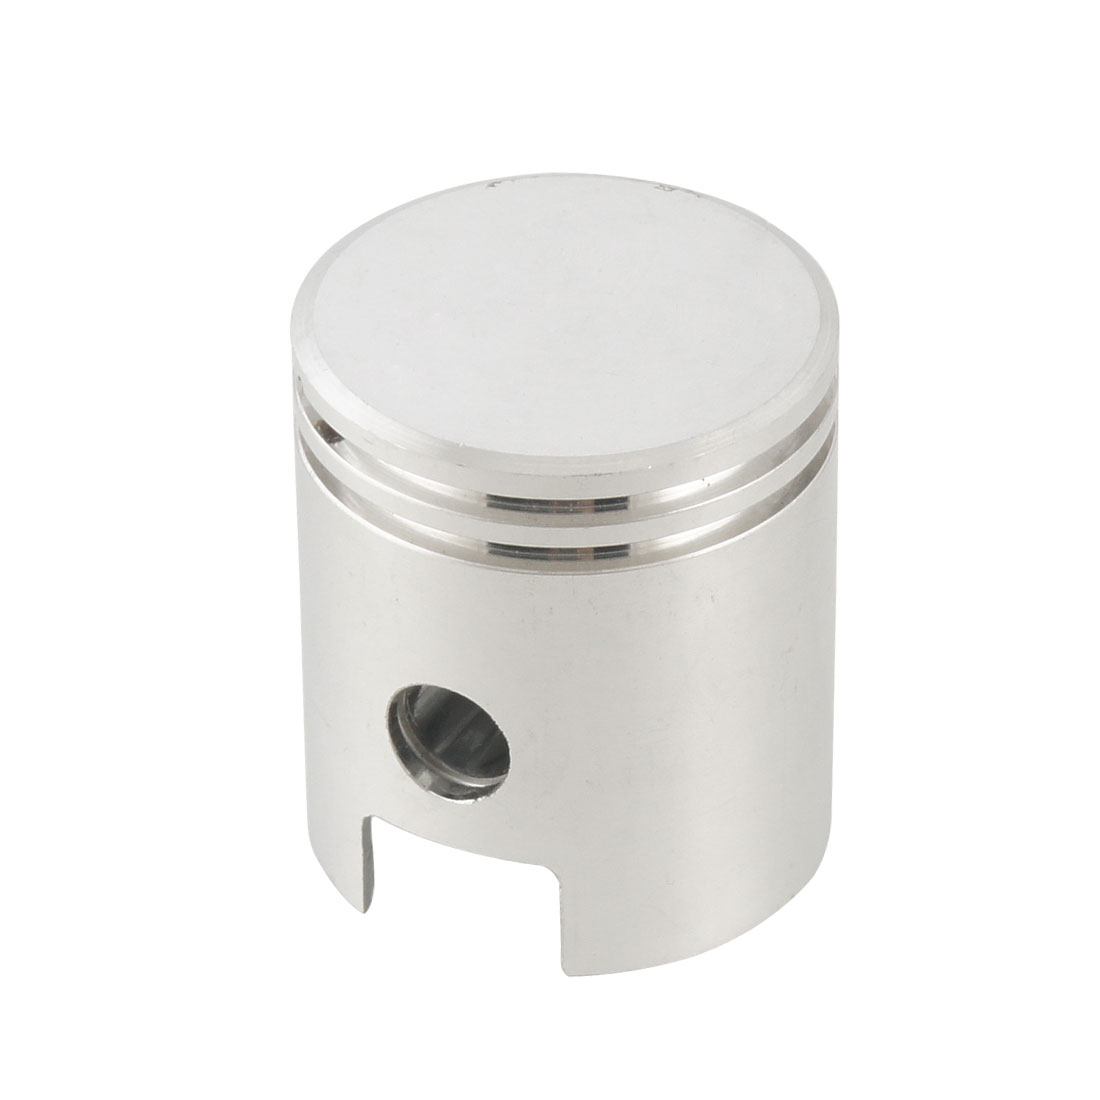 "Silver Tone Aluminum Alloy 1.57"" x 1.7"" Engine Air Compressor Piston"